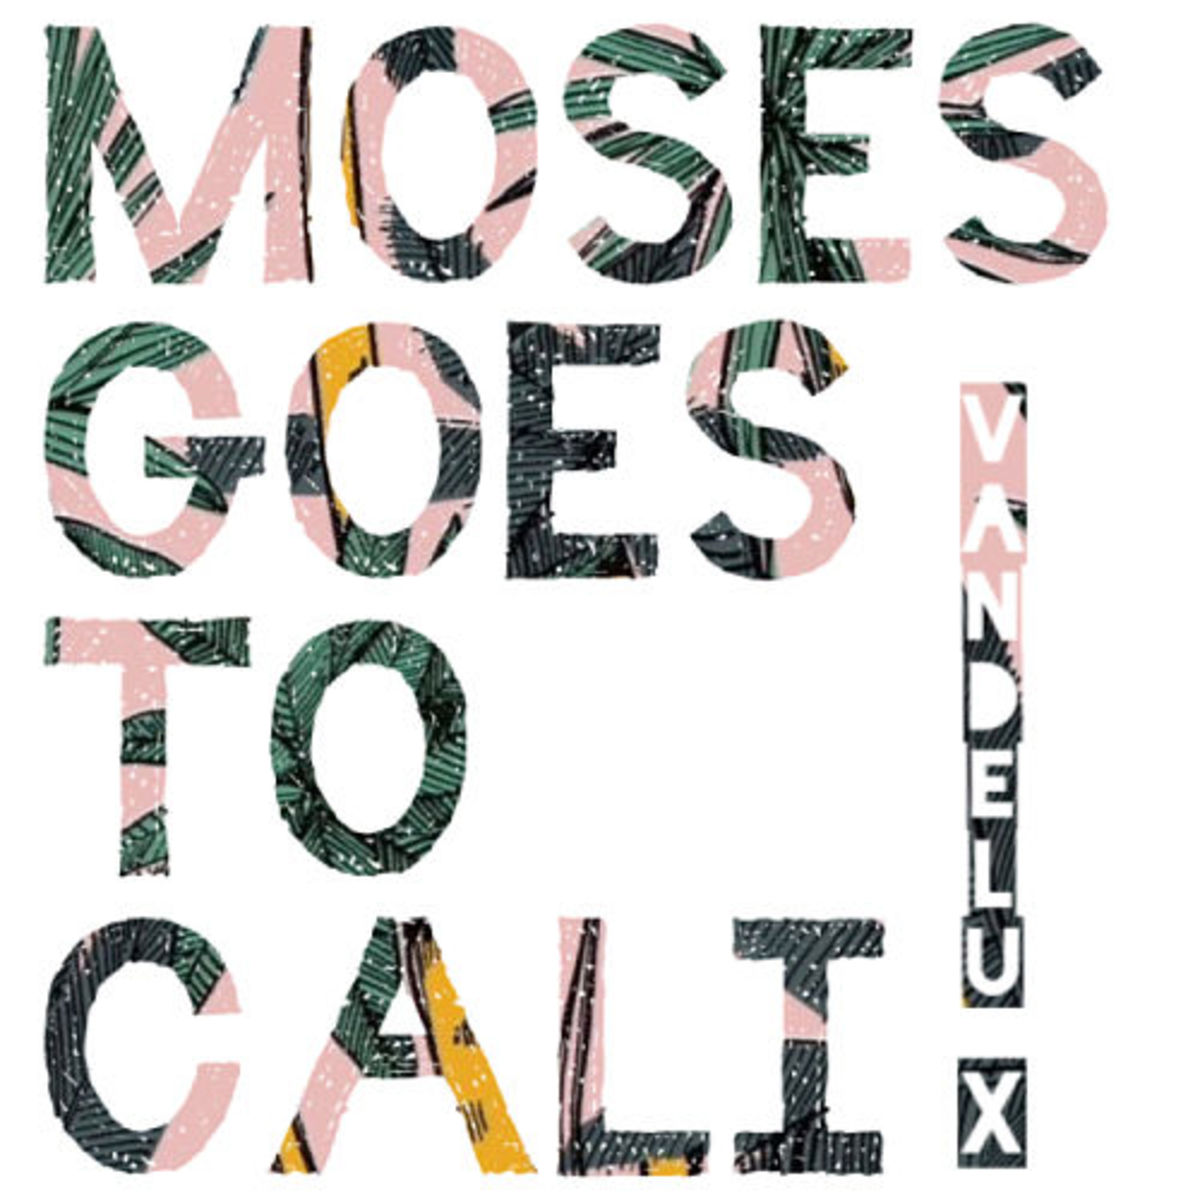 vandelux-moses-goes-to-cali.jpg